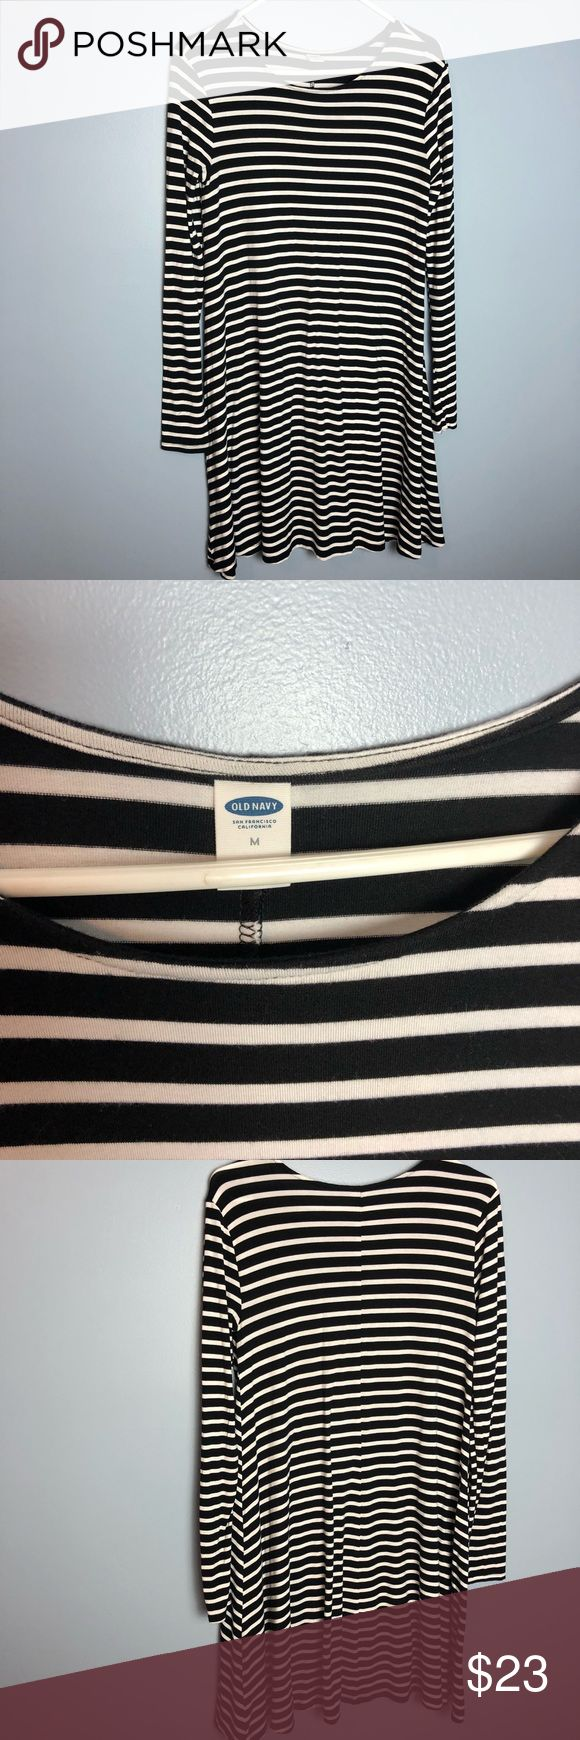 """Black and White Striped Long Sleeve Dress This is a dress from Old Navy that is black and white striped and reaches mid thigh (I am 5'5"""" for reference). Very soft material that is breathable and perfect for layering Dresses Midi"""